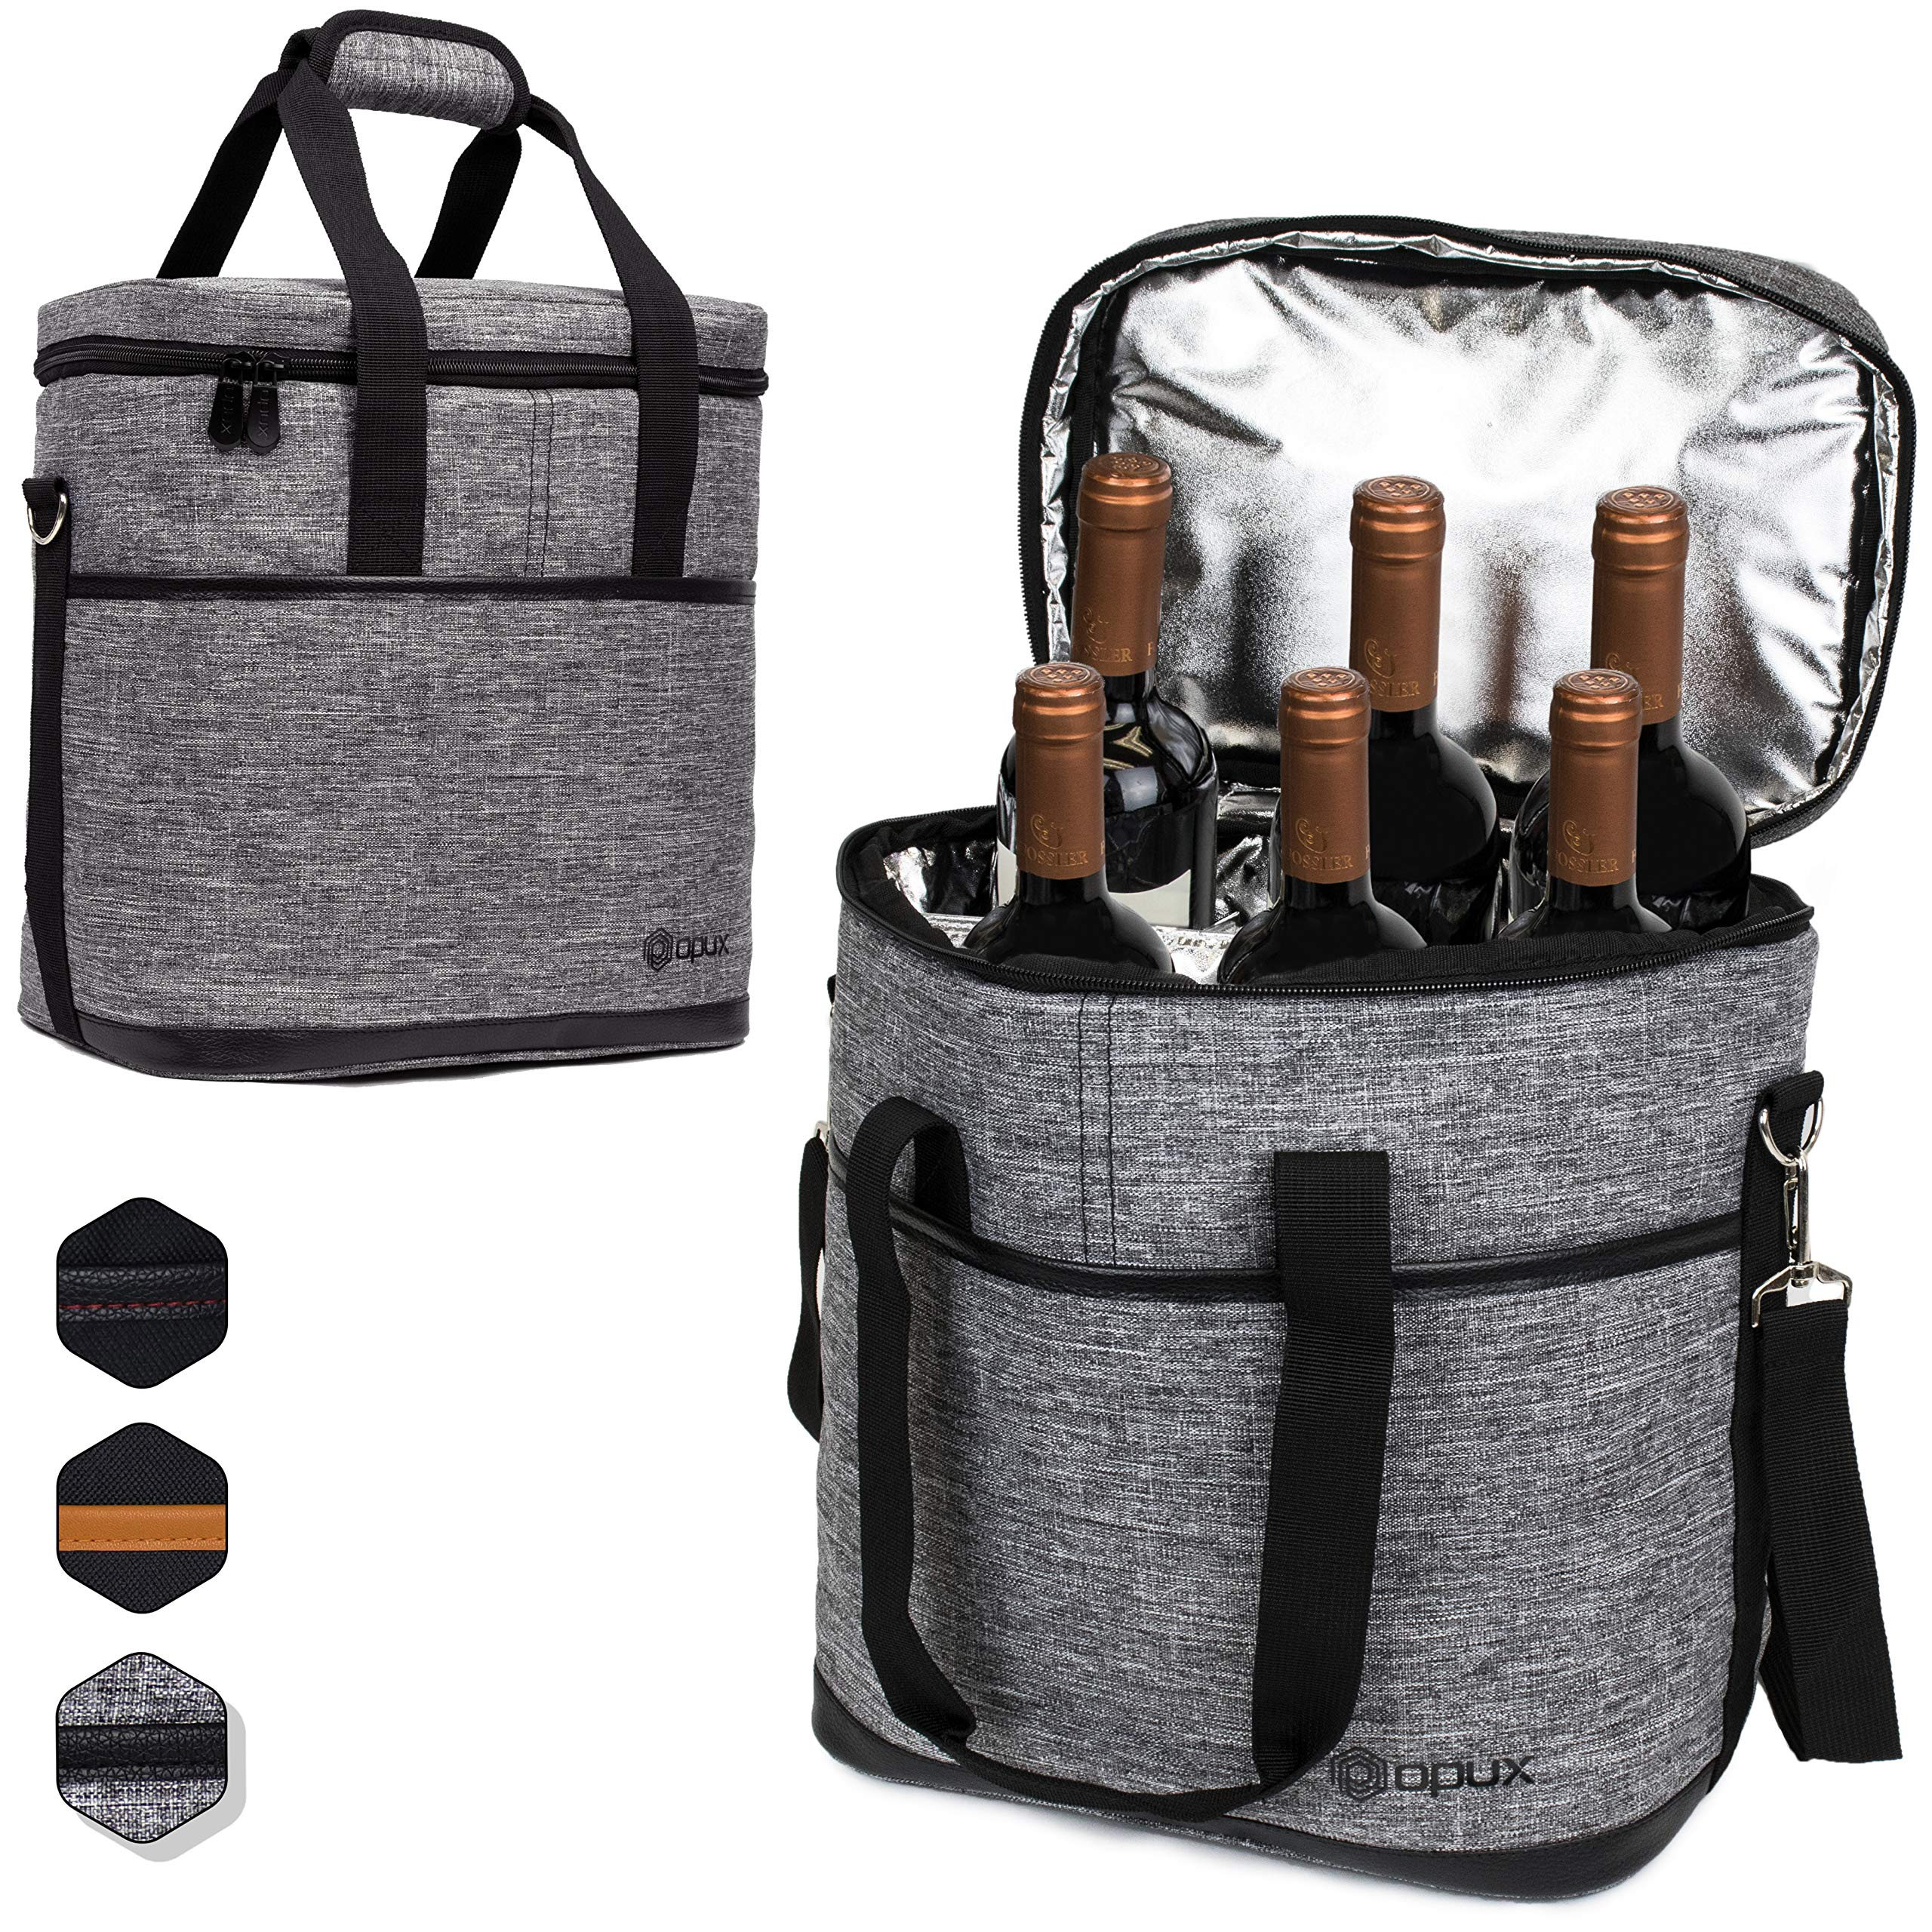 cc1b292d489a Details about Premium Insulated 6 Bottle Wine Carrier Tote Bag | Wine  Travel Bag with Shoulder